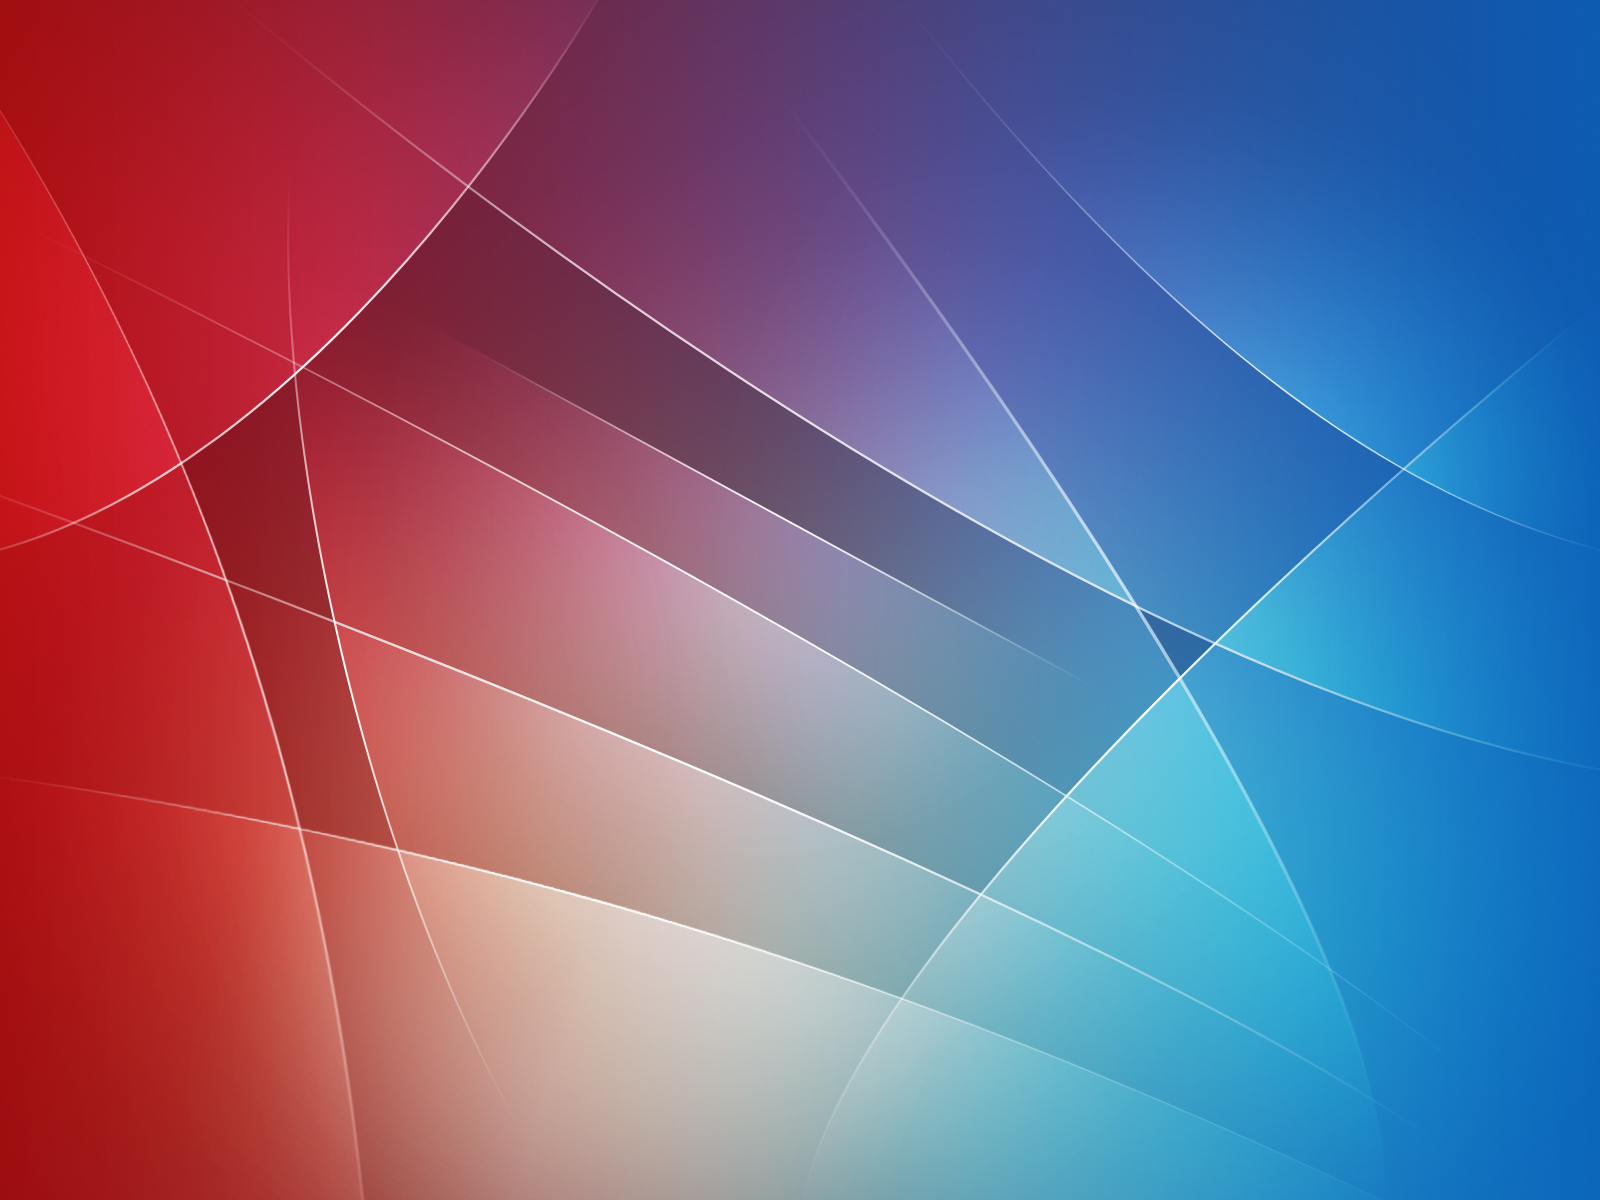 Red And Blue Lines Hd Wallpaper Wallpaper List 1600x1200